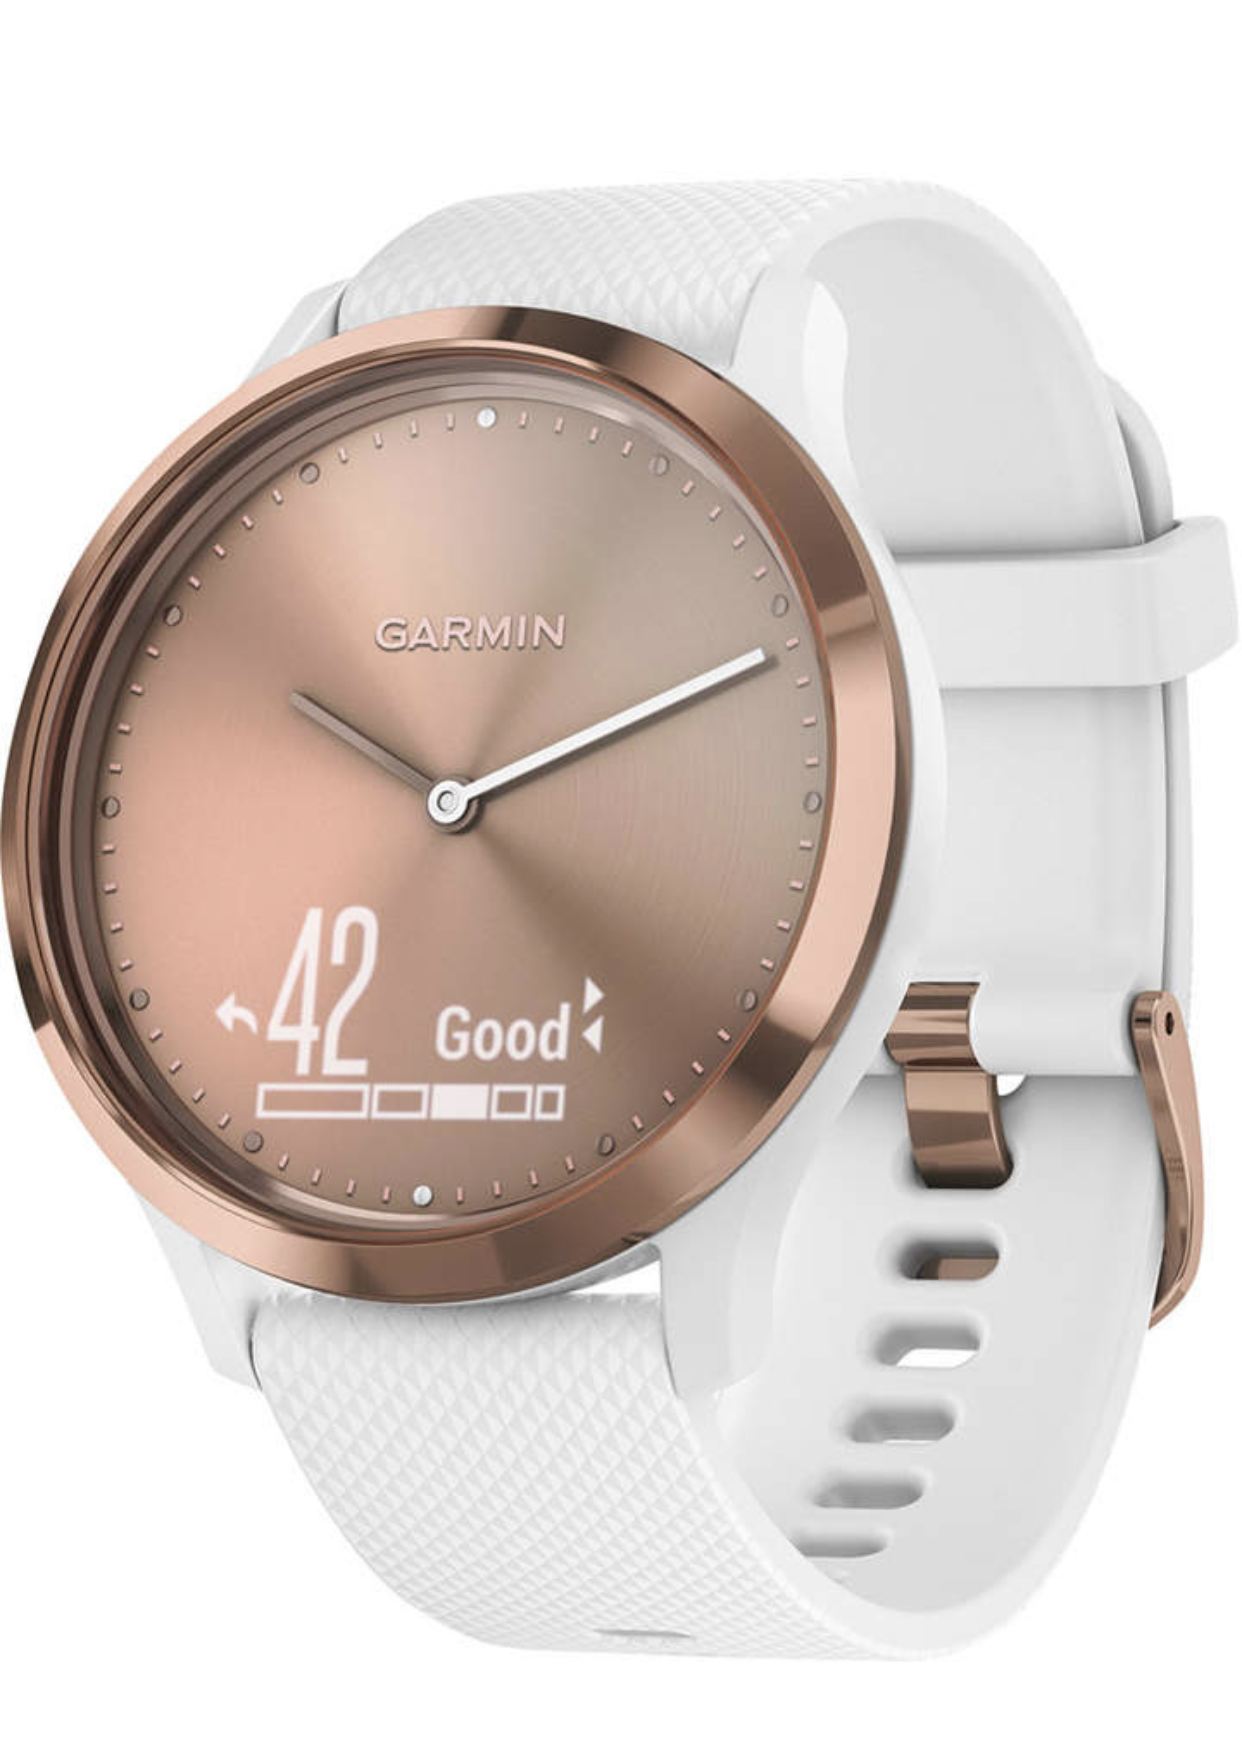 Garmin Vivomove Smartwatch Mothers Day Gift Idea